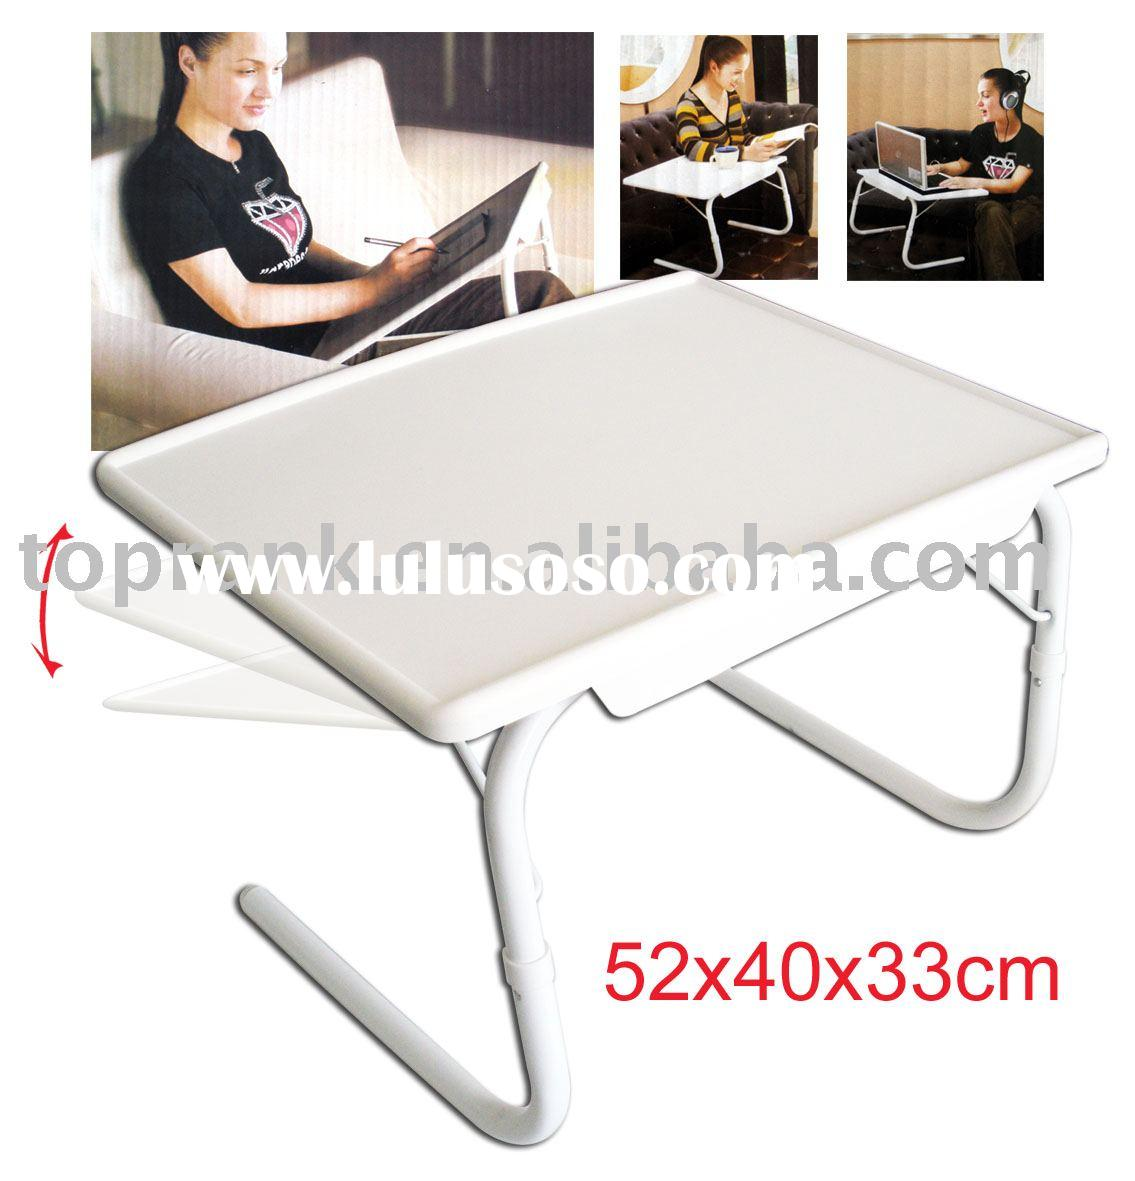 BED MATES PORTABLE TABLE/PORTABLE TABLE/FOLDING TABLE